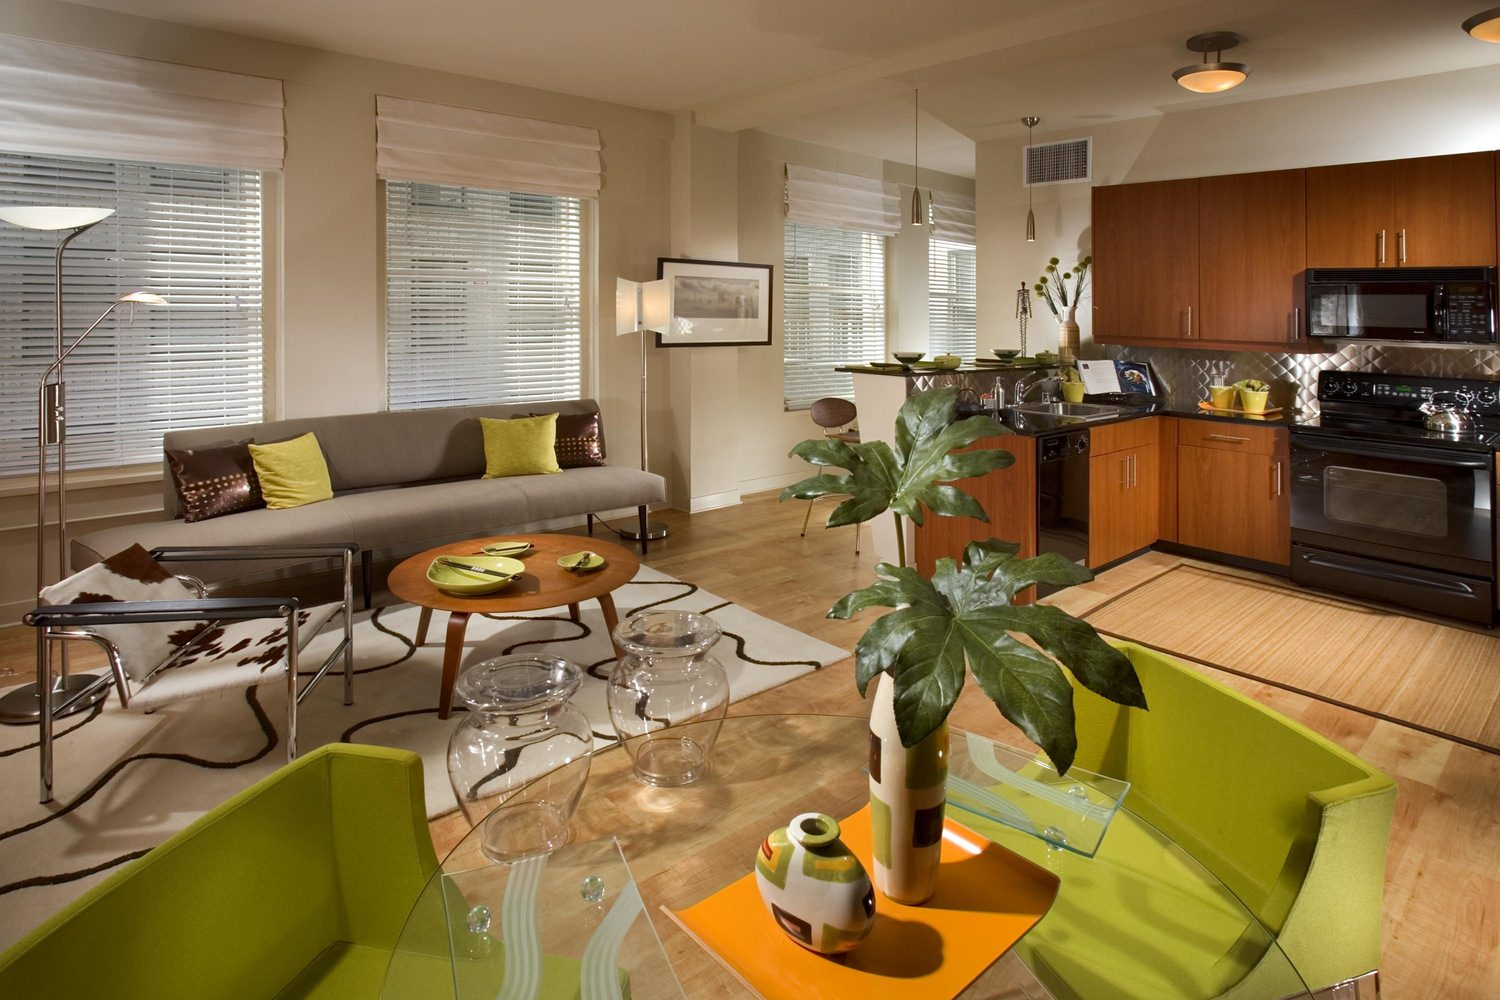 A kitchen that is next to a living room with green and grey couches along with wooden tables.